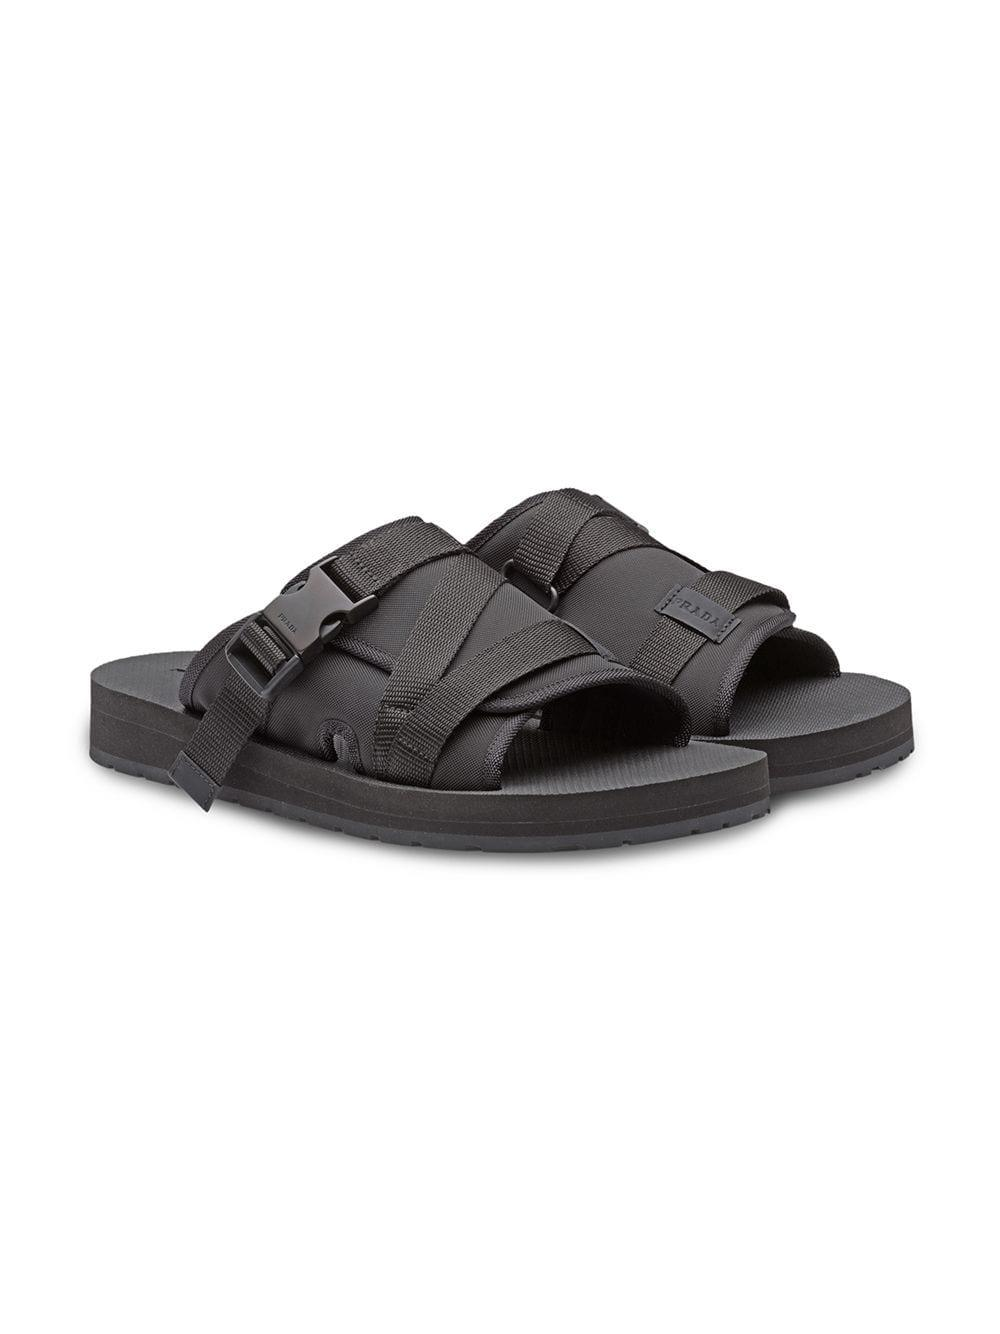 5fc5defe5ad9 Prada Buckle Open-toe Sandals in Black for Men - Save 4% - Lyst